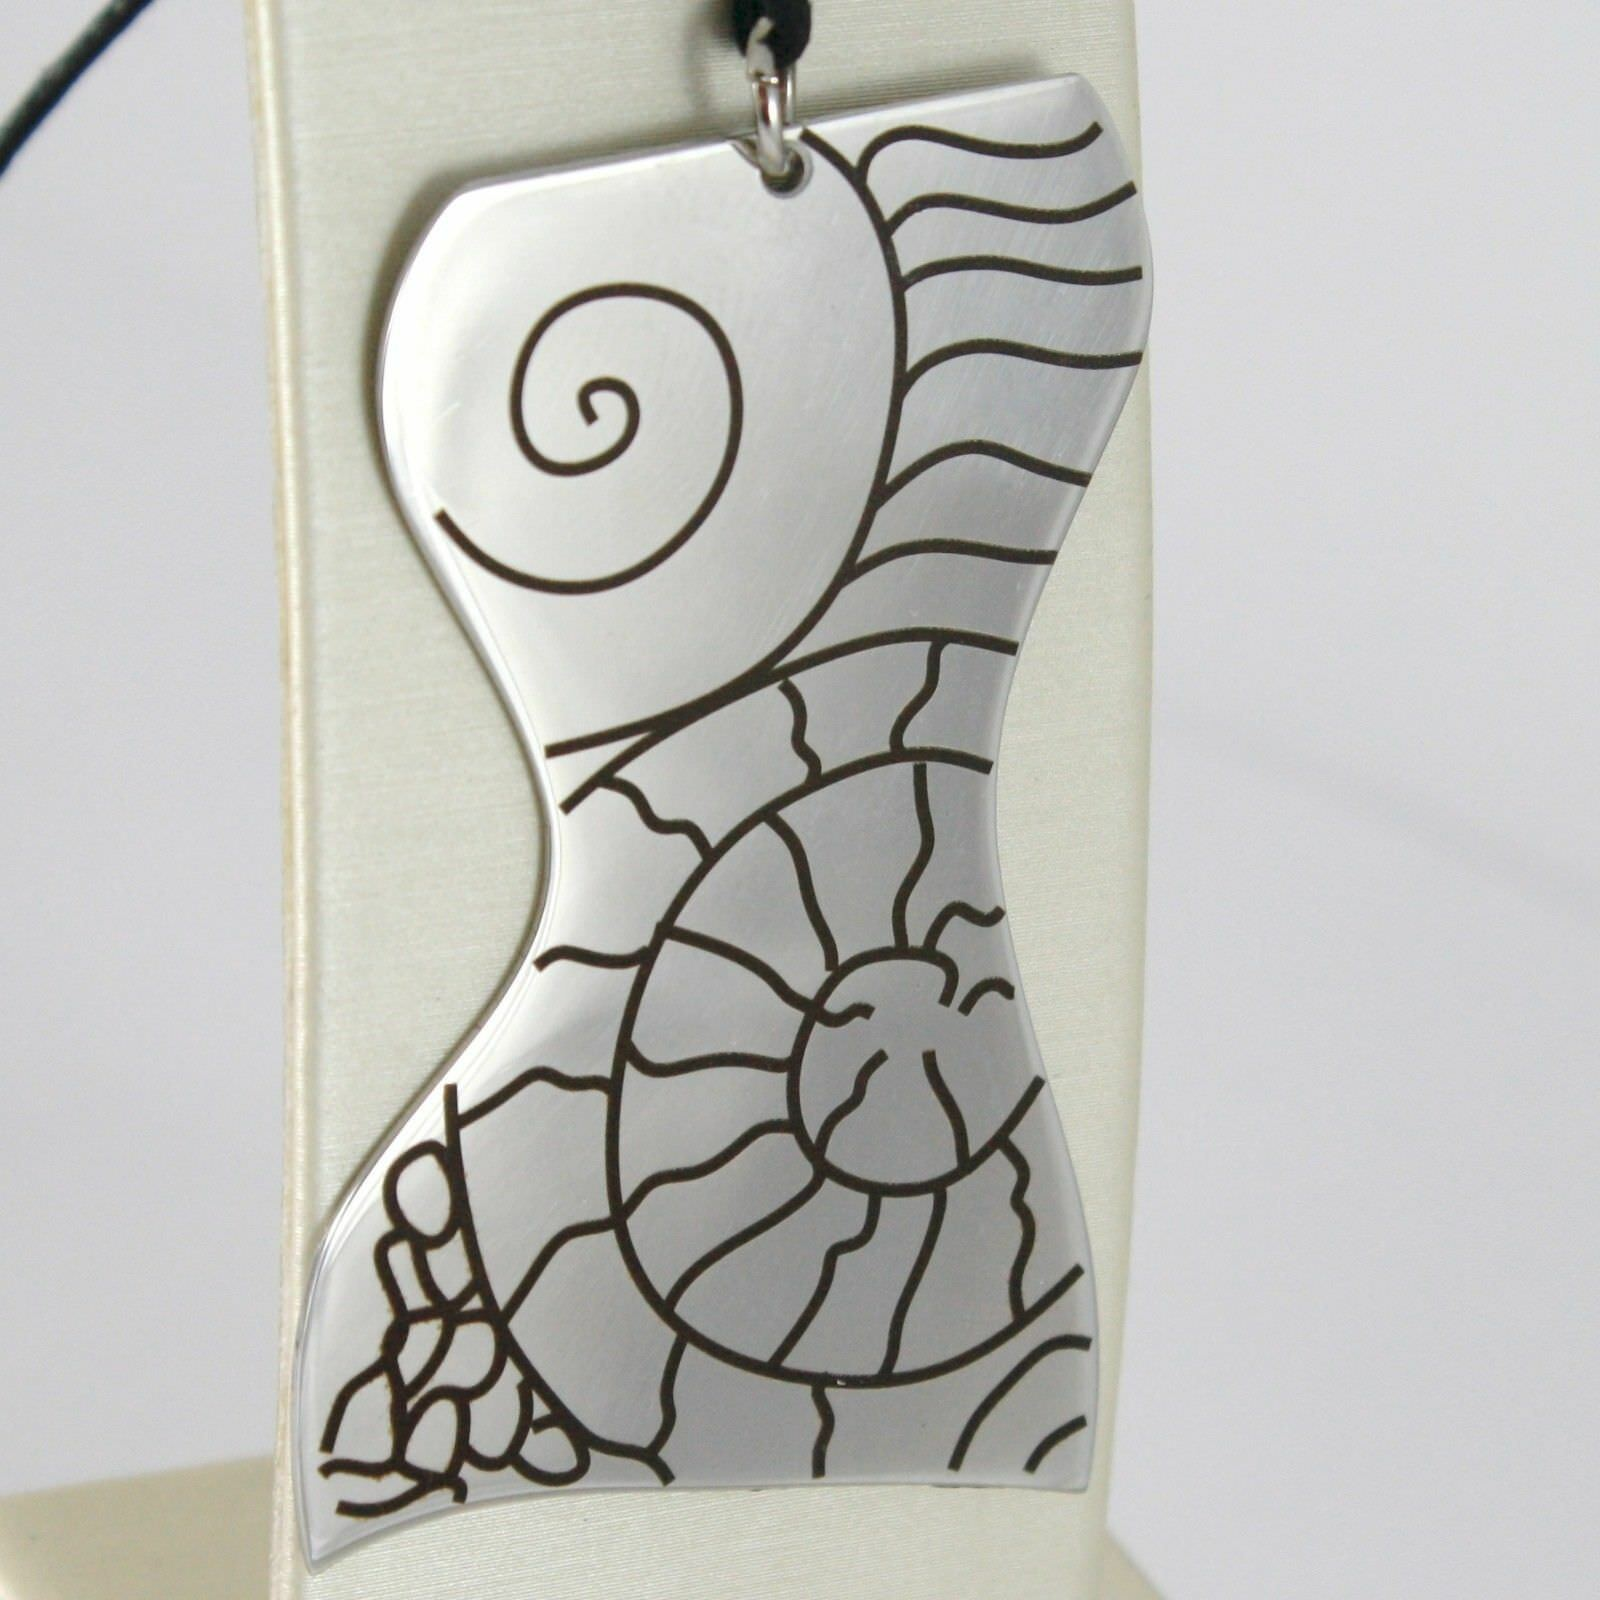 Pendant Steel Engraved With Bust Of Women's,Shell And Lines Slinky Bass